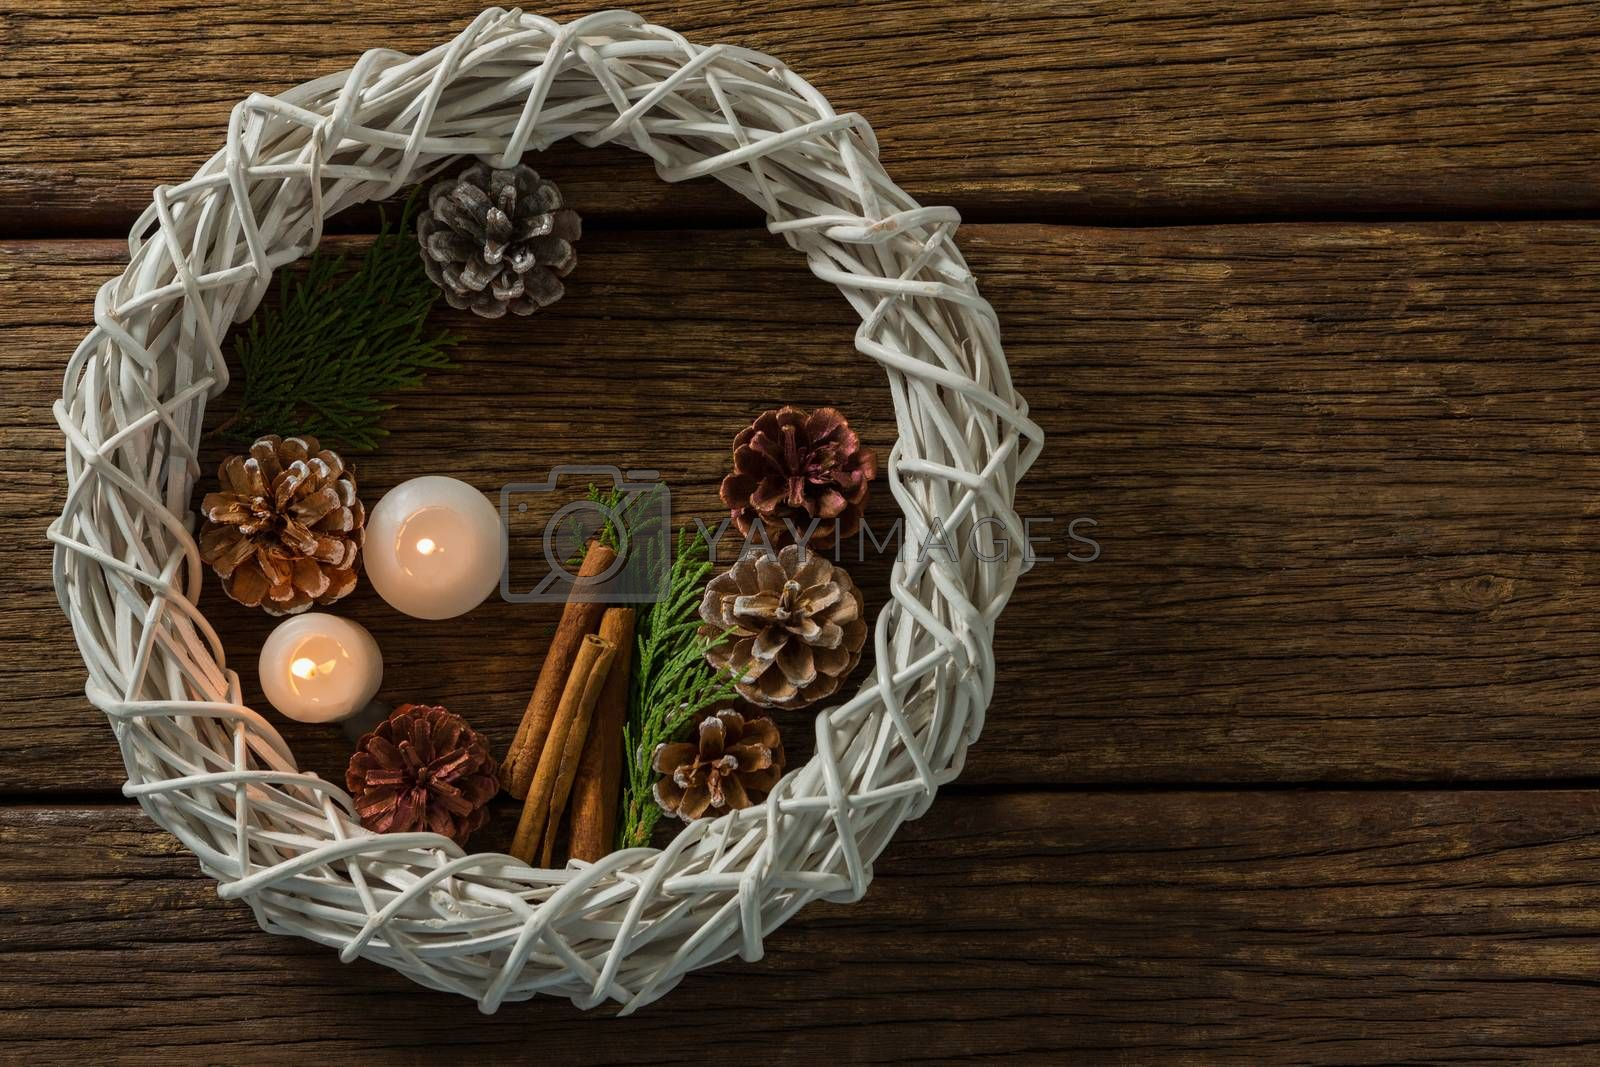 Overhead view of pine cones with illuminated candles and wreath by Wavebreakmedia